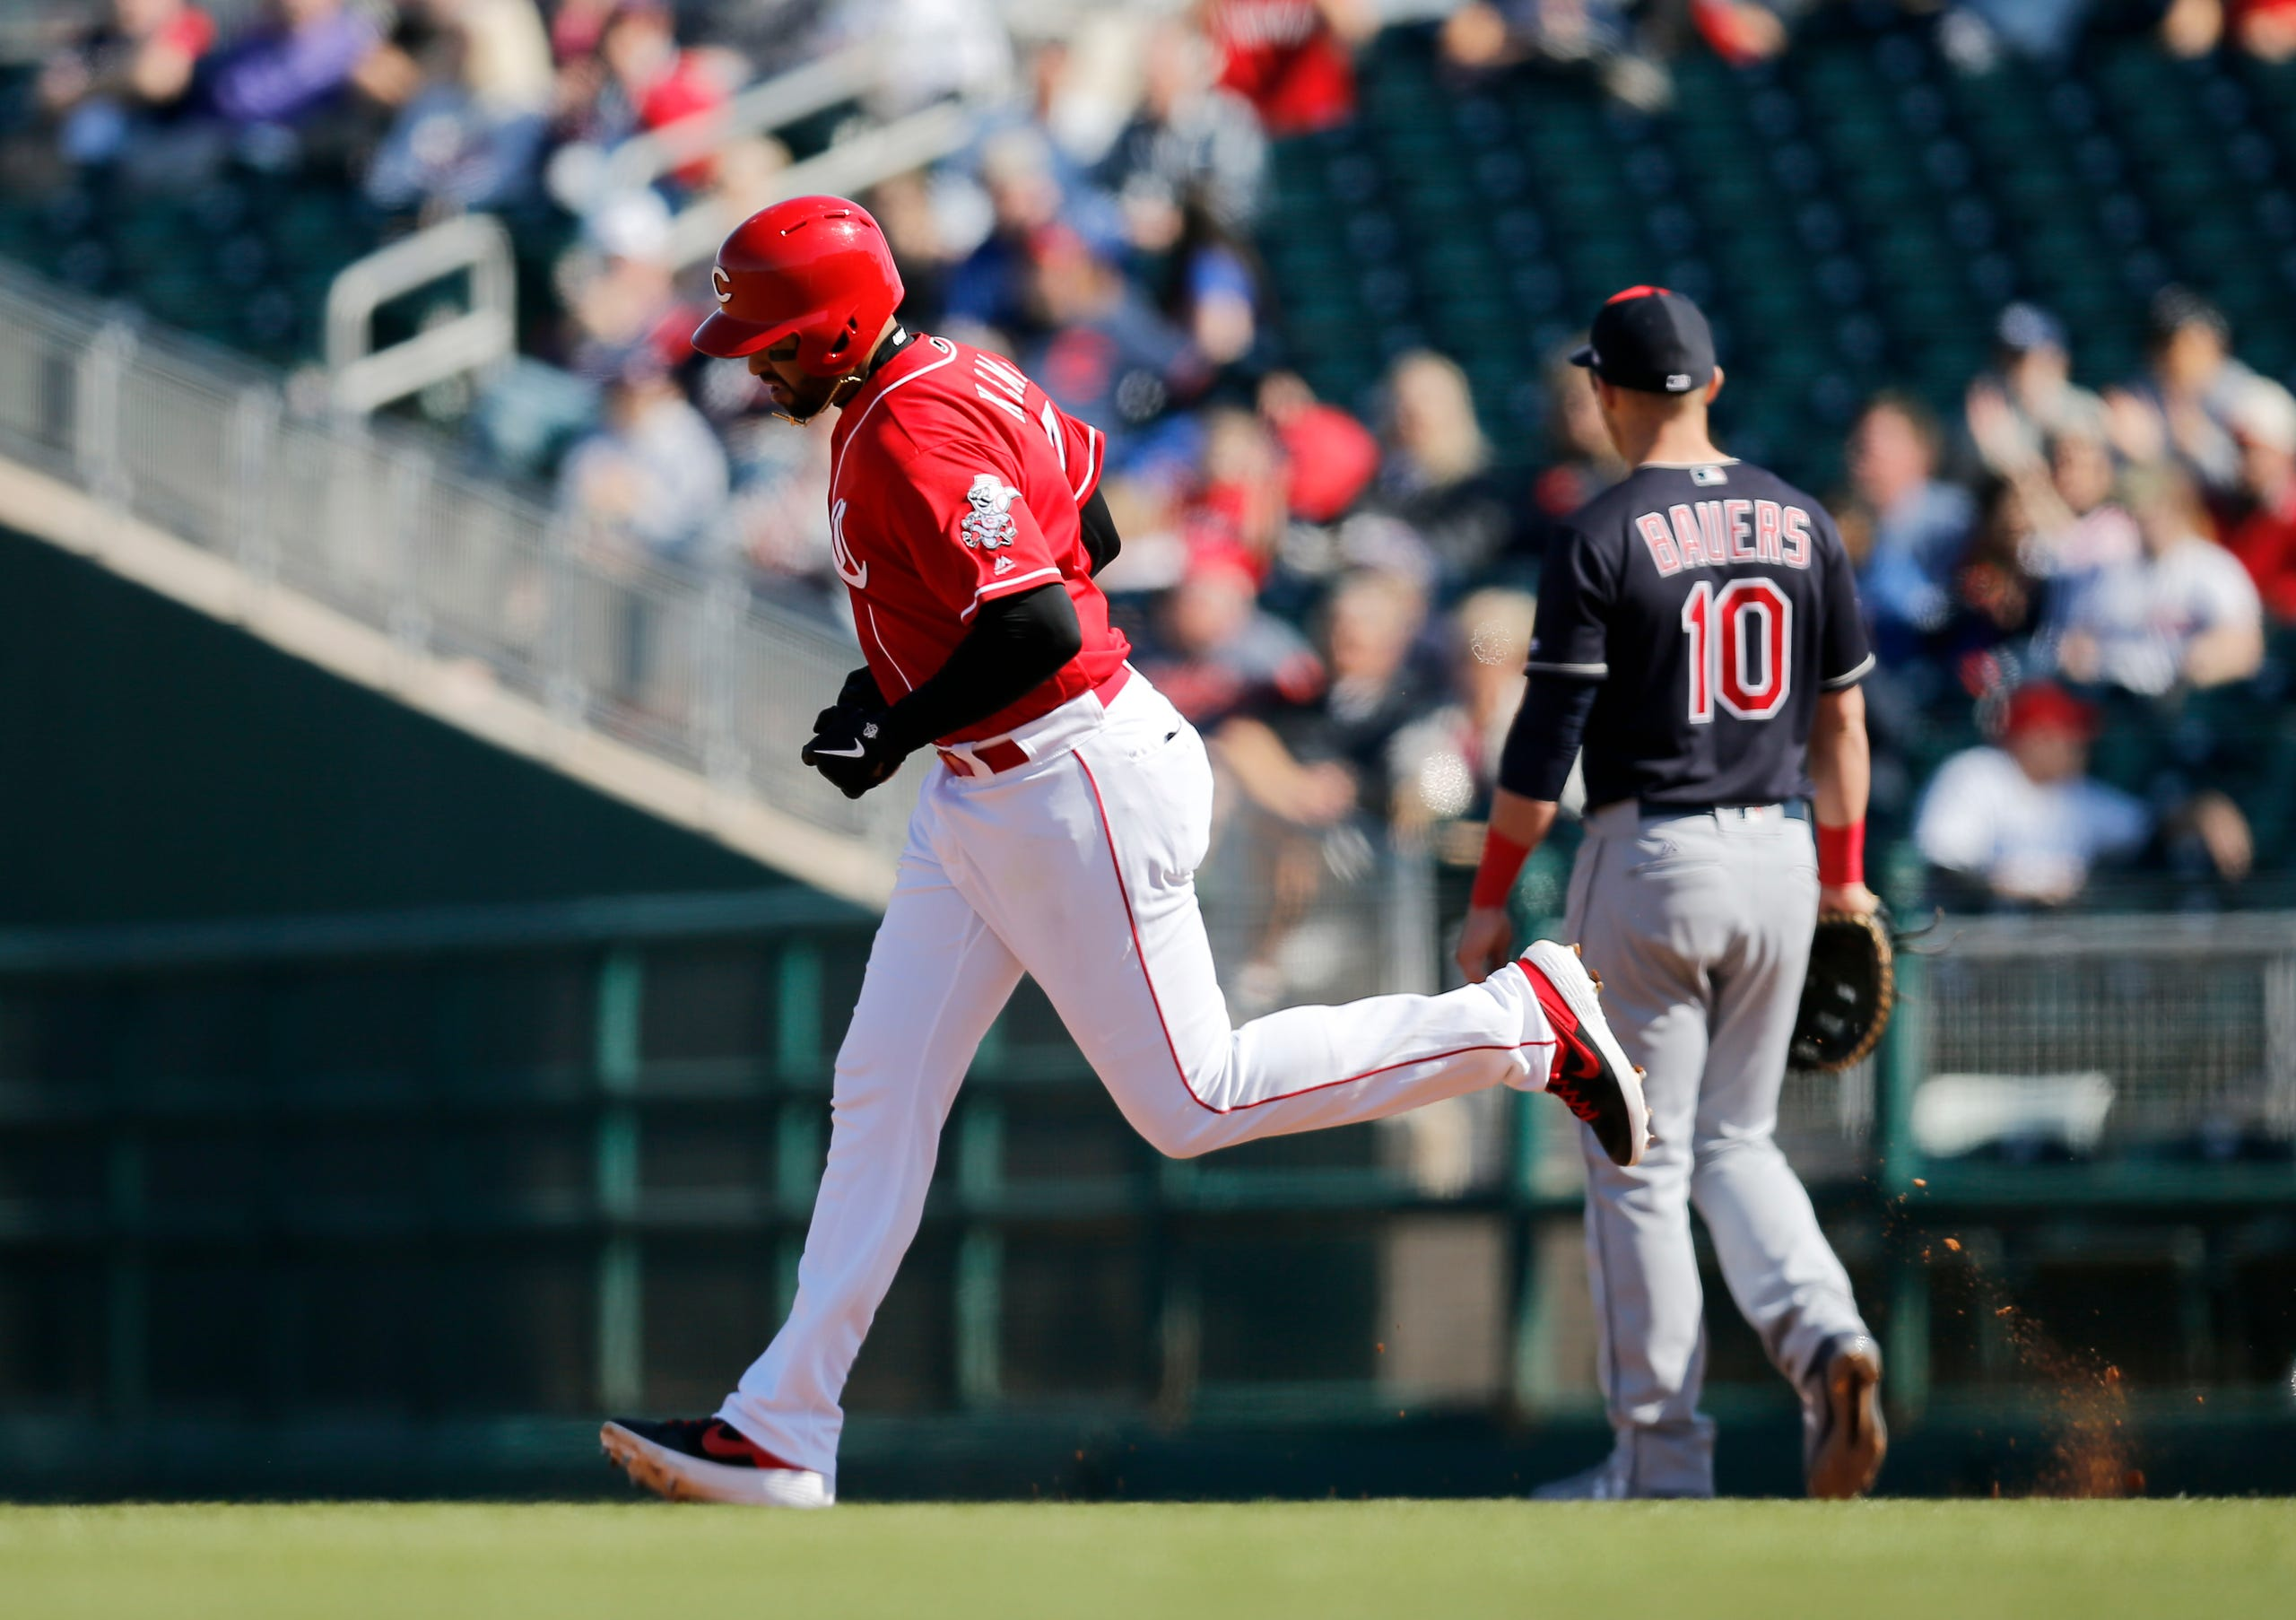 PHOTOS: Reds and Indians play to 3-3 tie in Spring Training